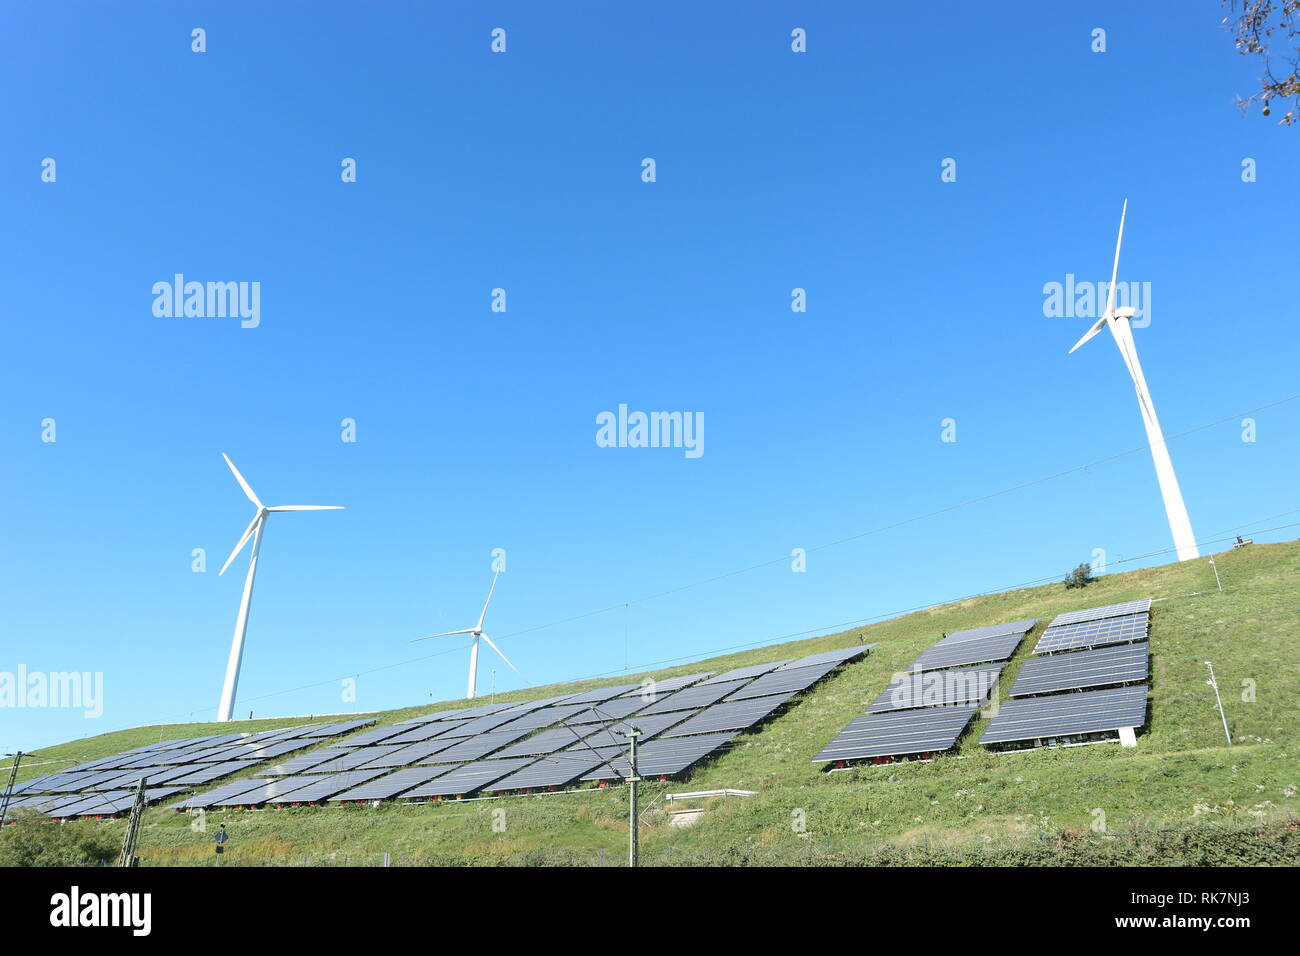 Restored sanitary landfill cell with photovoltaic cells and wind turbine - Stock Image